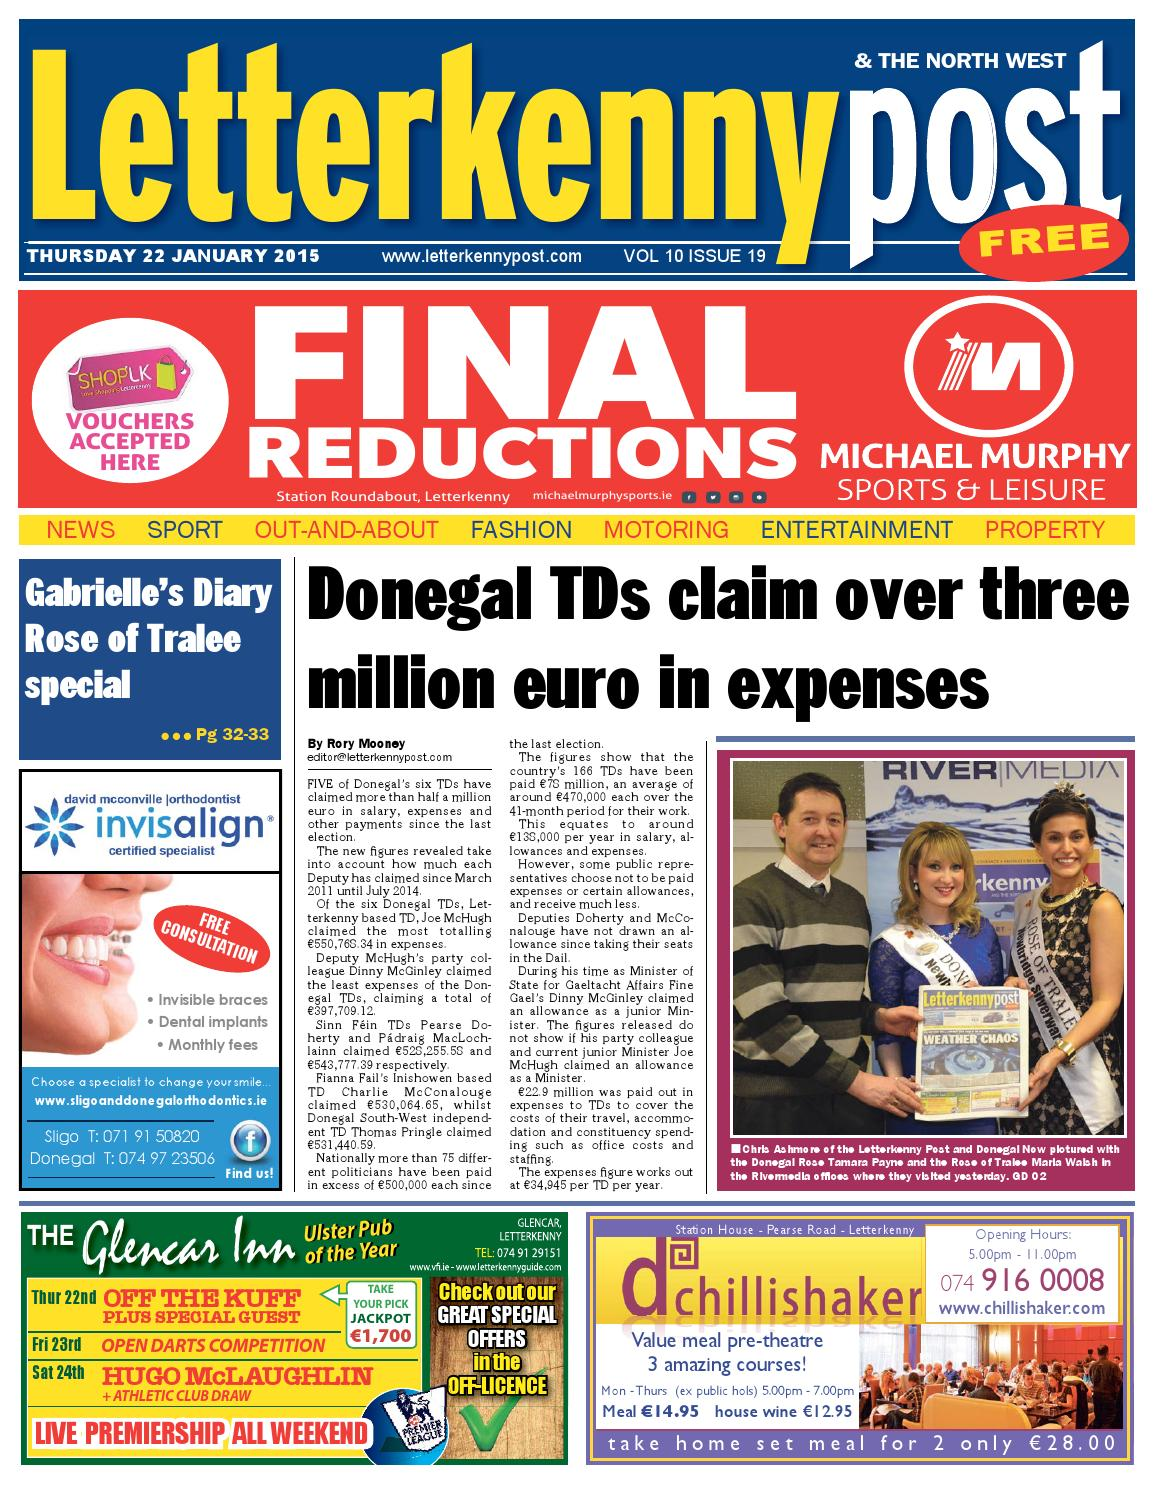 22 Jan Letterkenny Post By River Media Newspapers Issuu